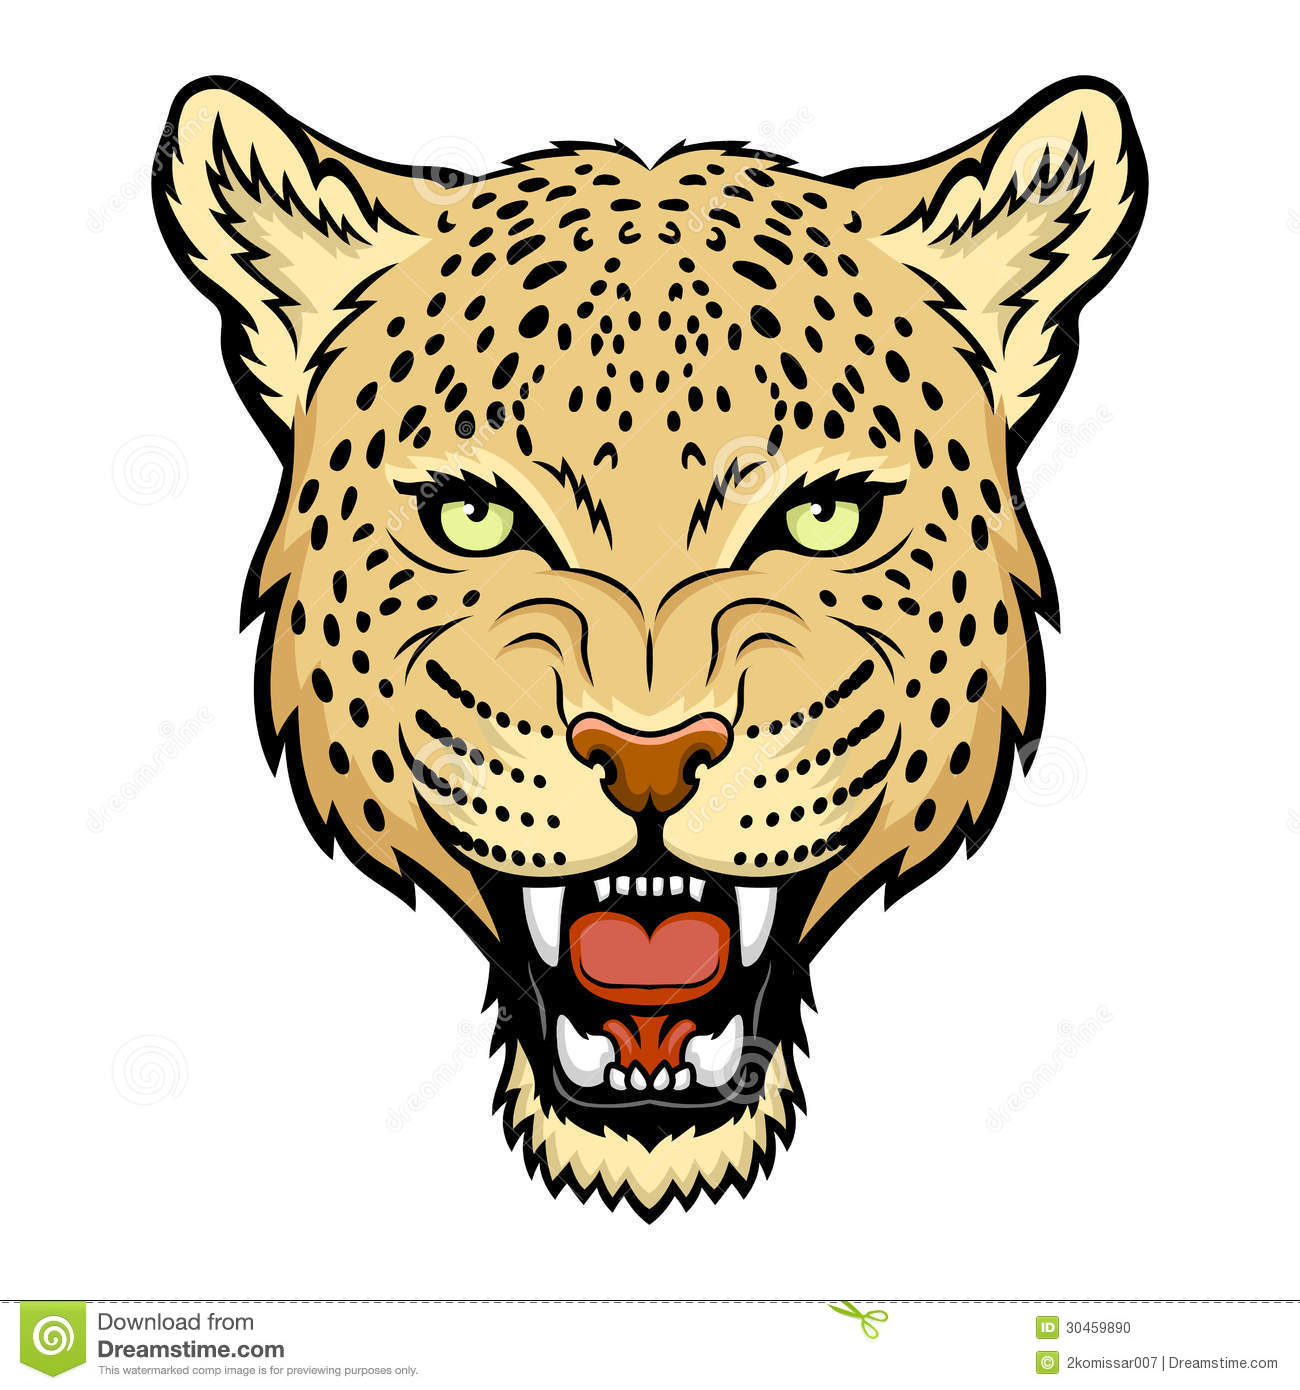 Leopard face clipart graphic library stock Leopard Clipart Pictures | Free download best Leopard Clipart ... graphic library stock